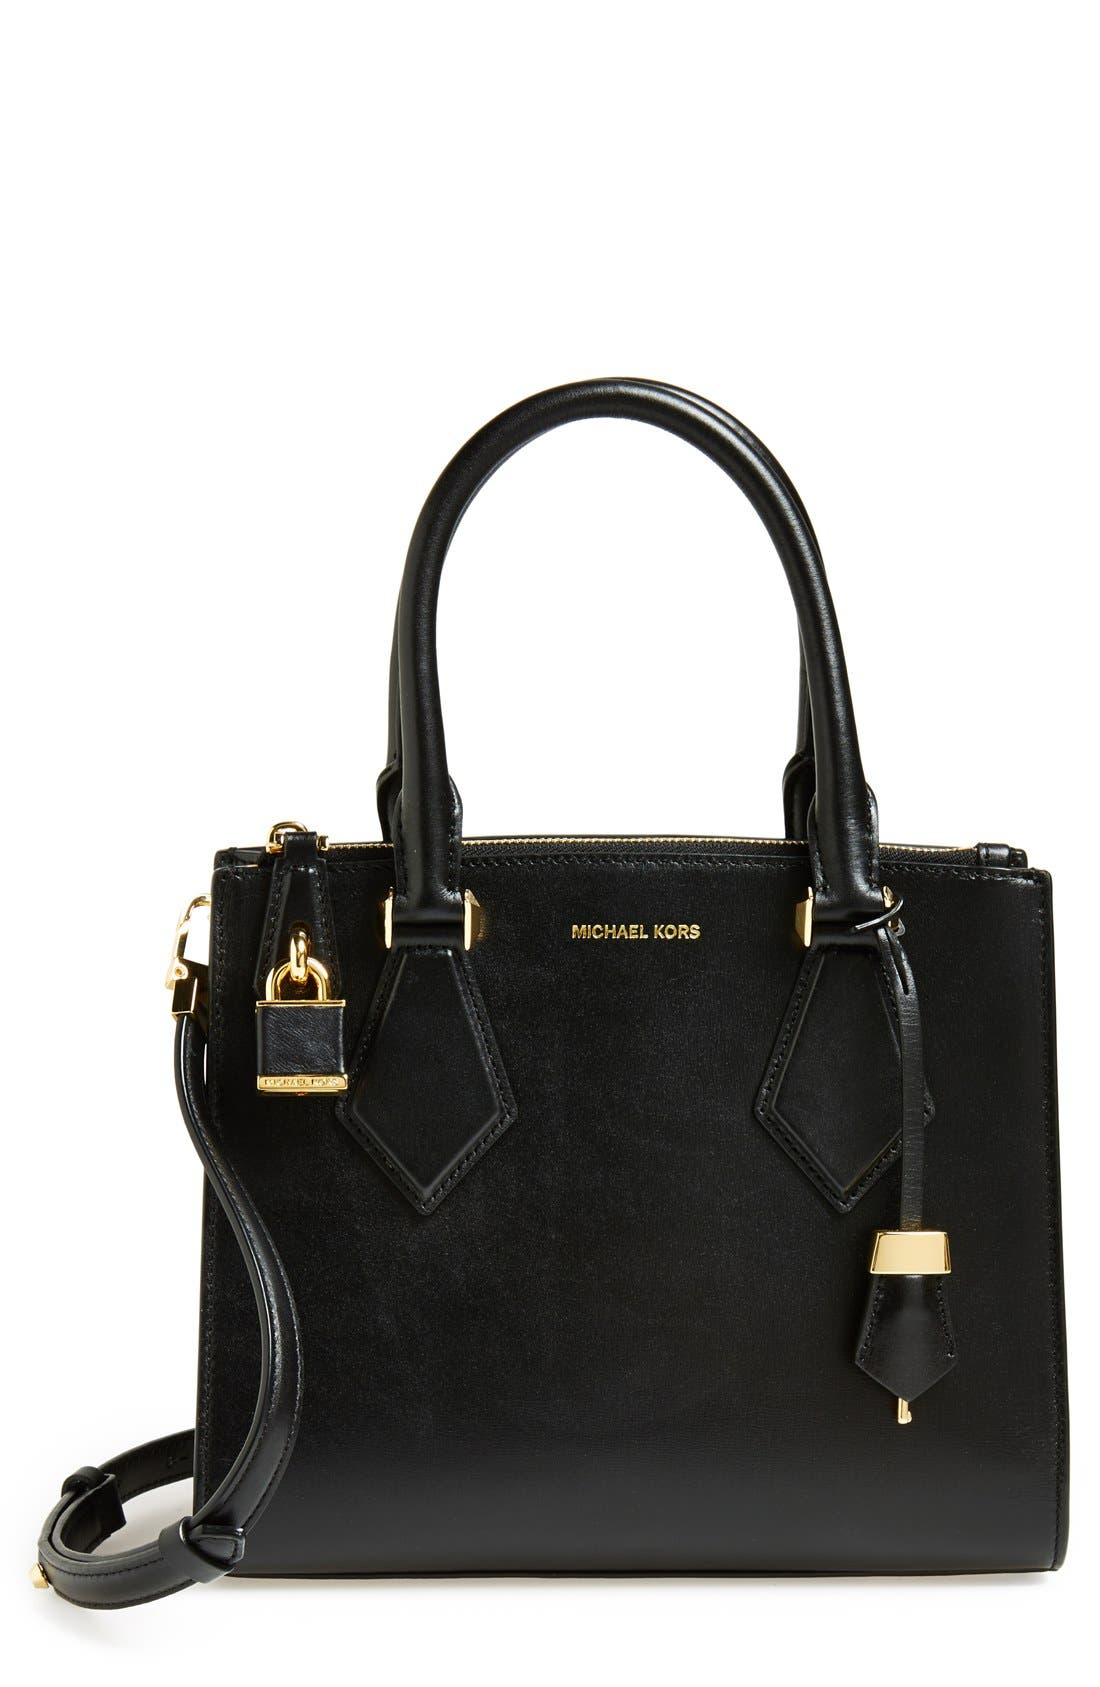 Alternate Image 1 Selected - Michael Kors 'Small Casey' Leather Satchel